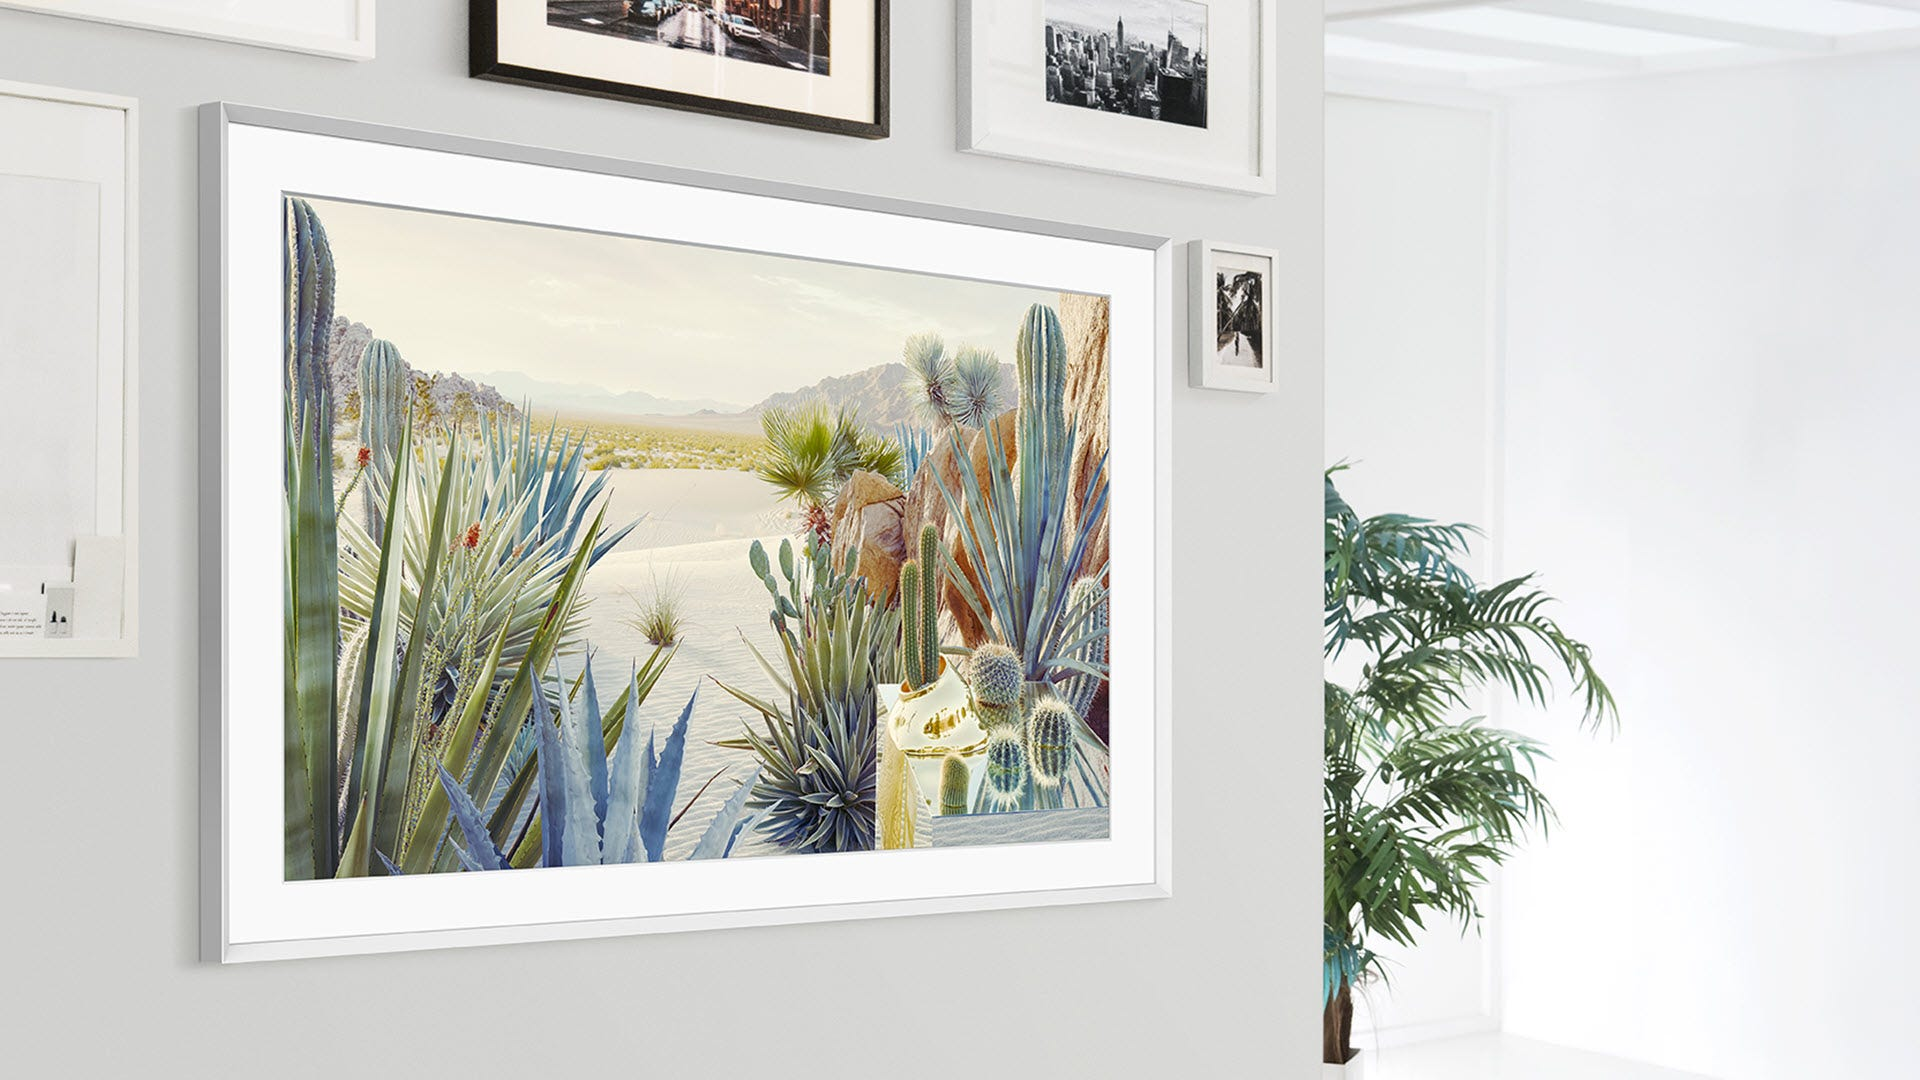 A TV that looks like art in a picture frame.